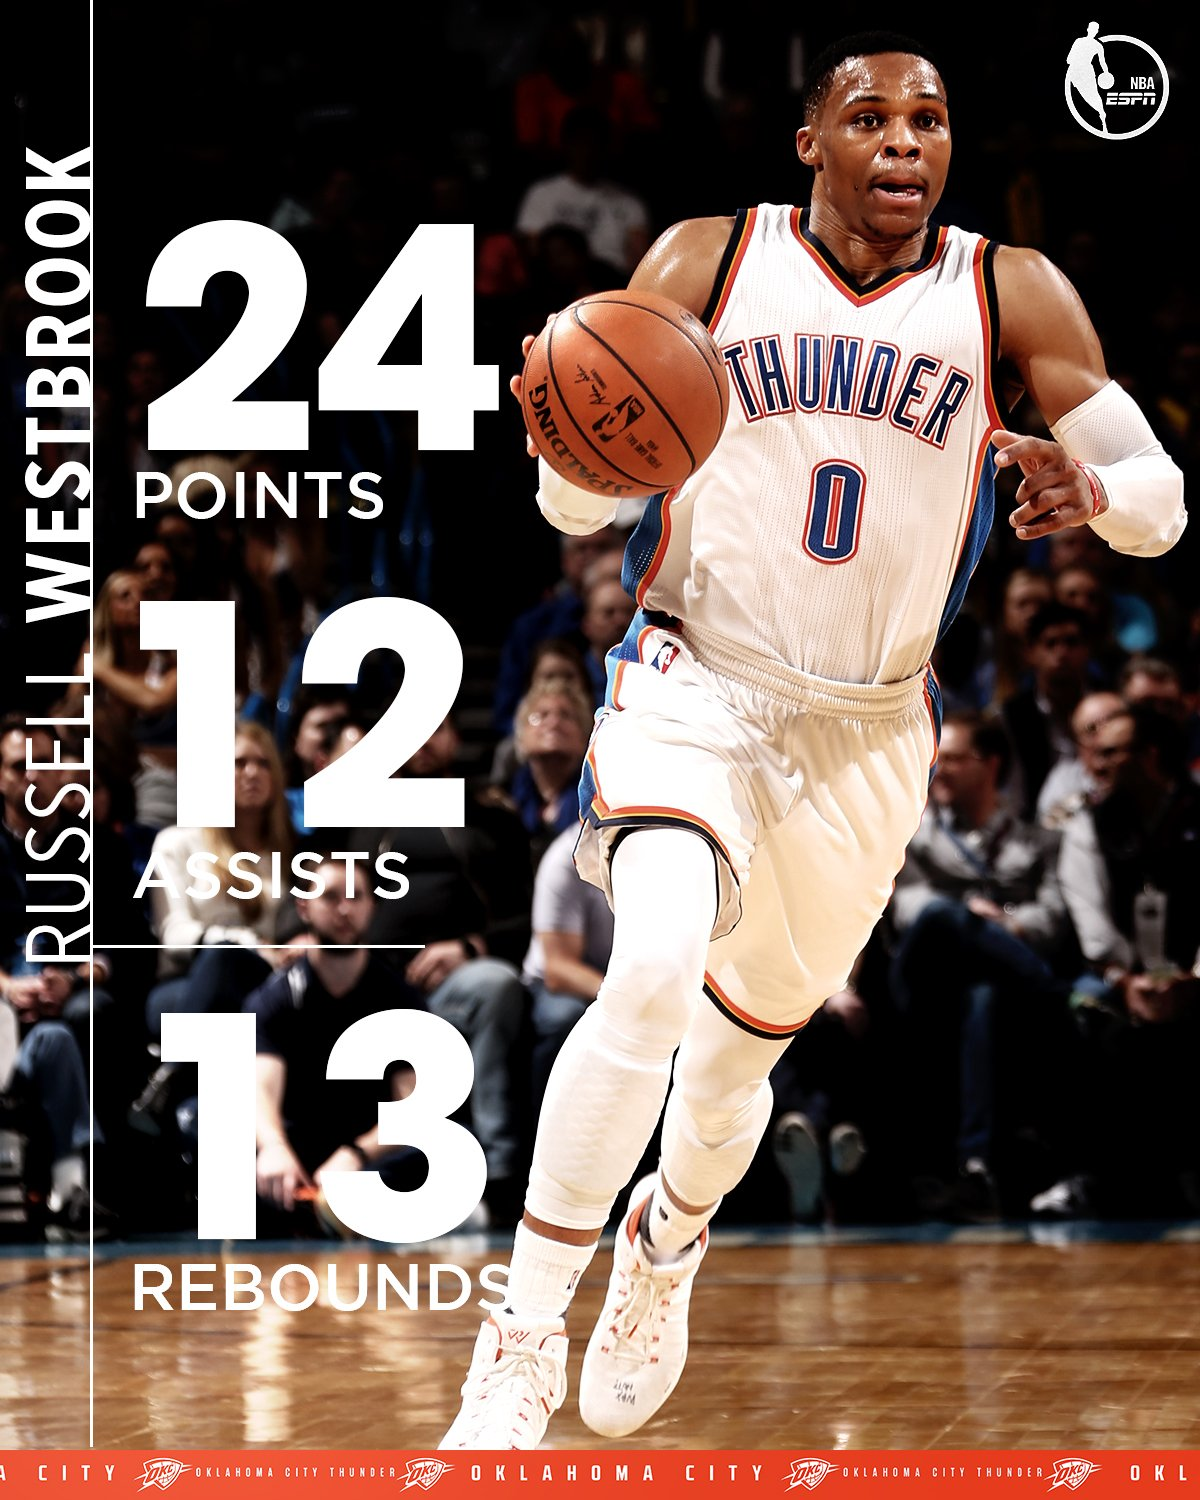 The Thunder are 15-3 when Russ records a triple-double https://t.co/7xjNxF6oyn